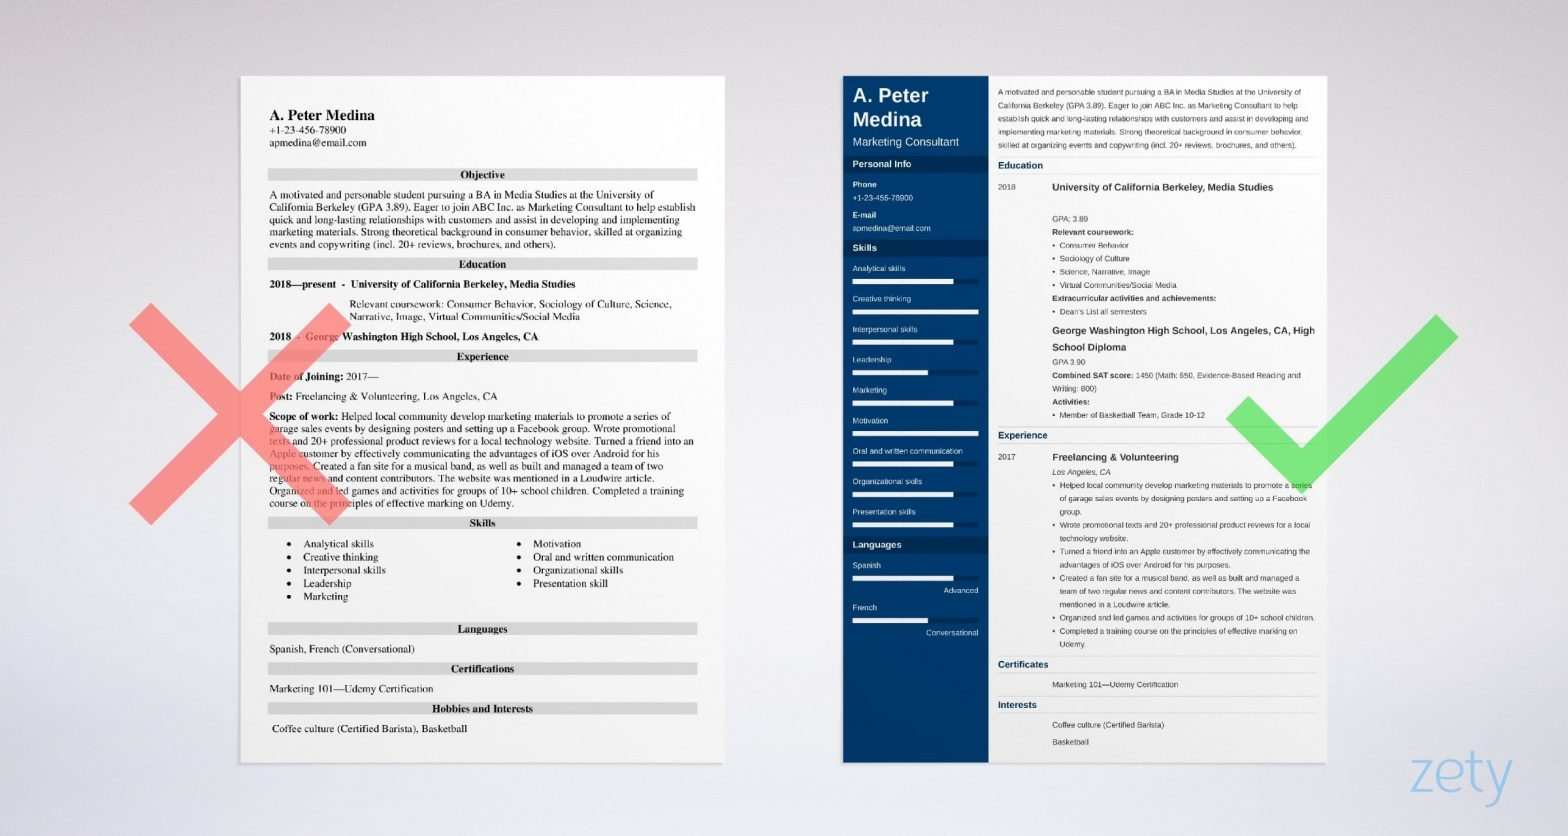 Resume for Beginners with No Experience Sample How to Write A Resume with No Experience & Get the First Job